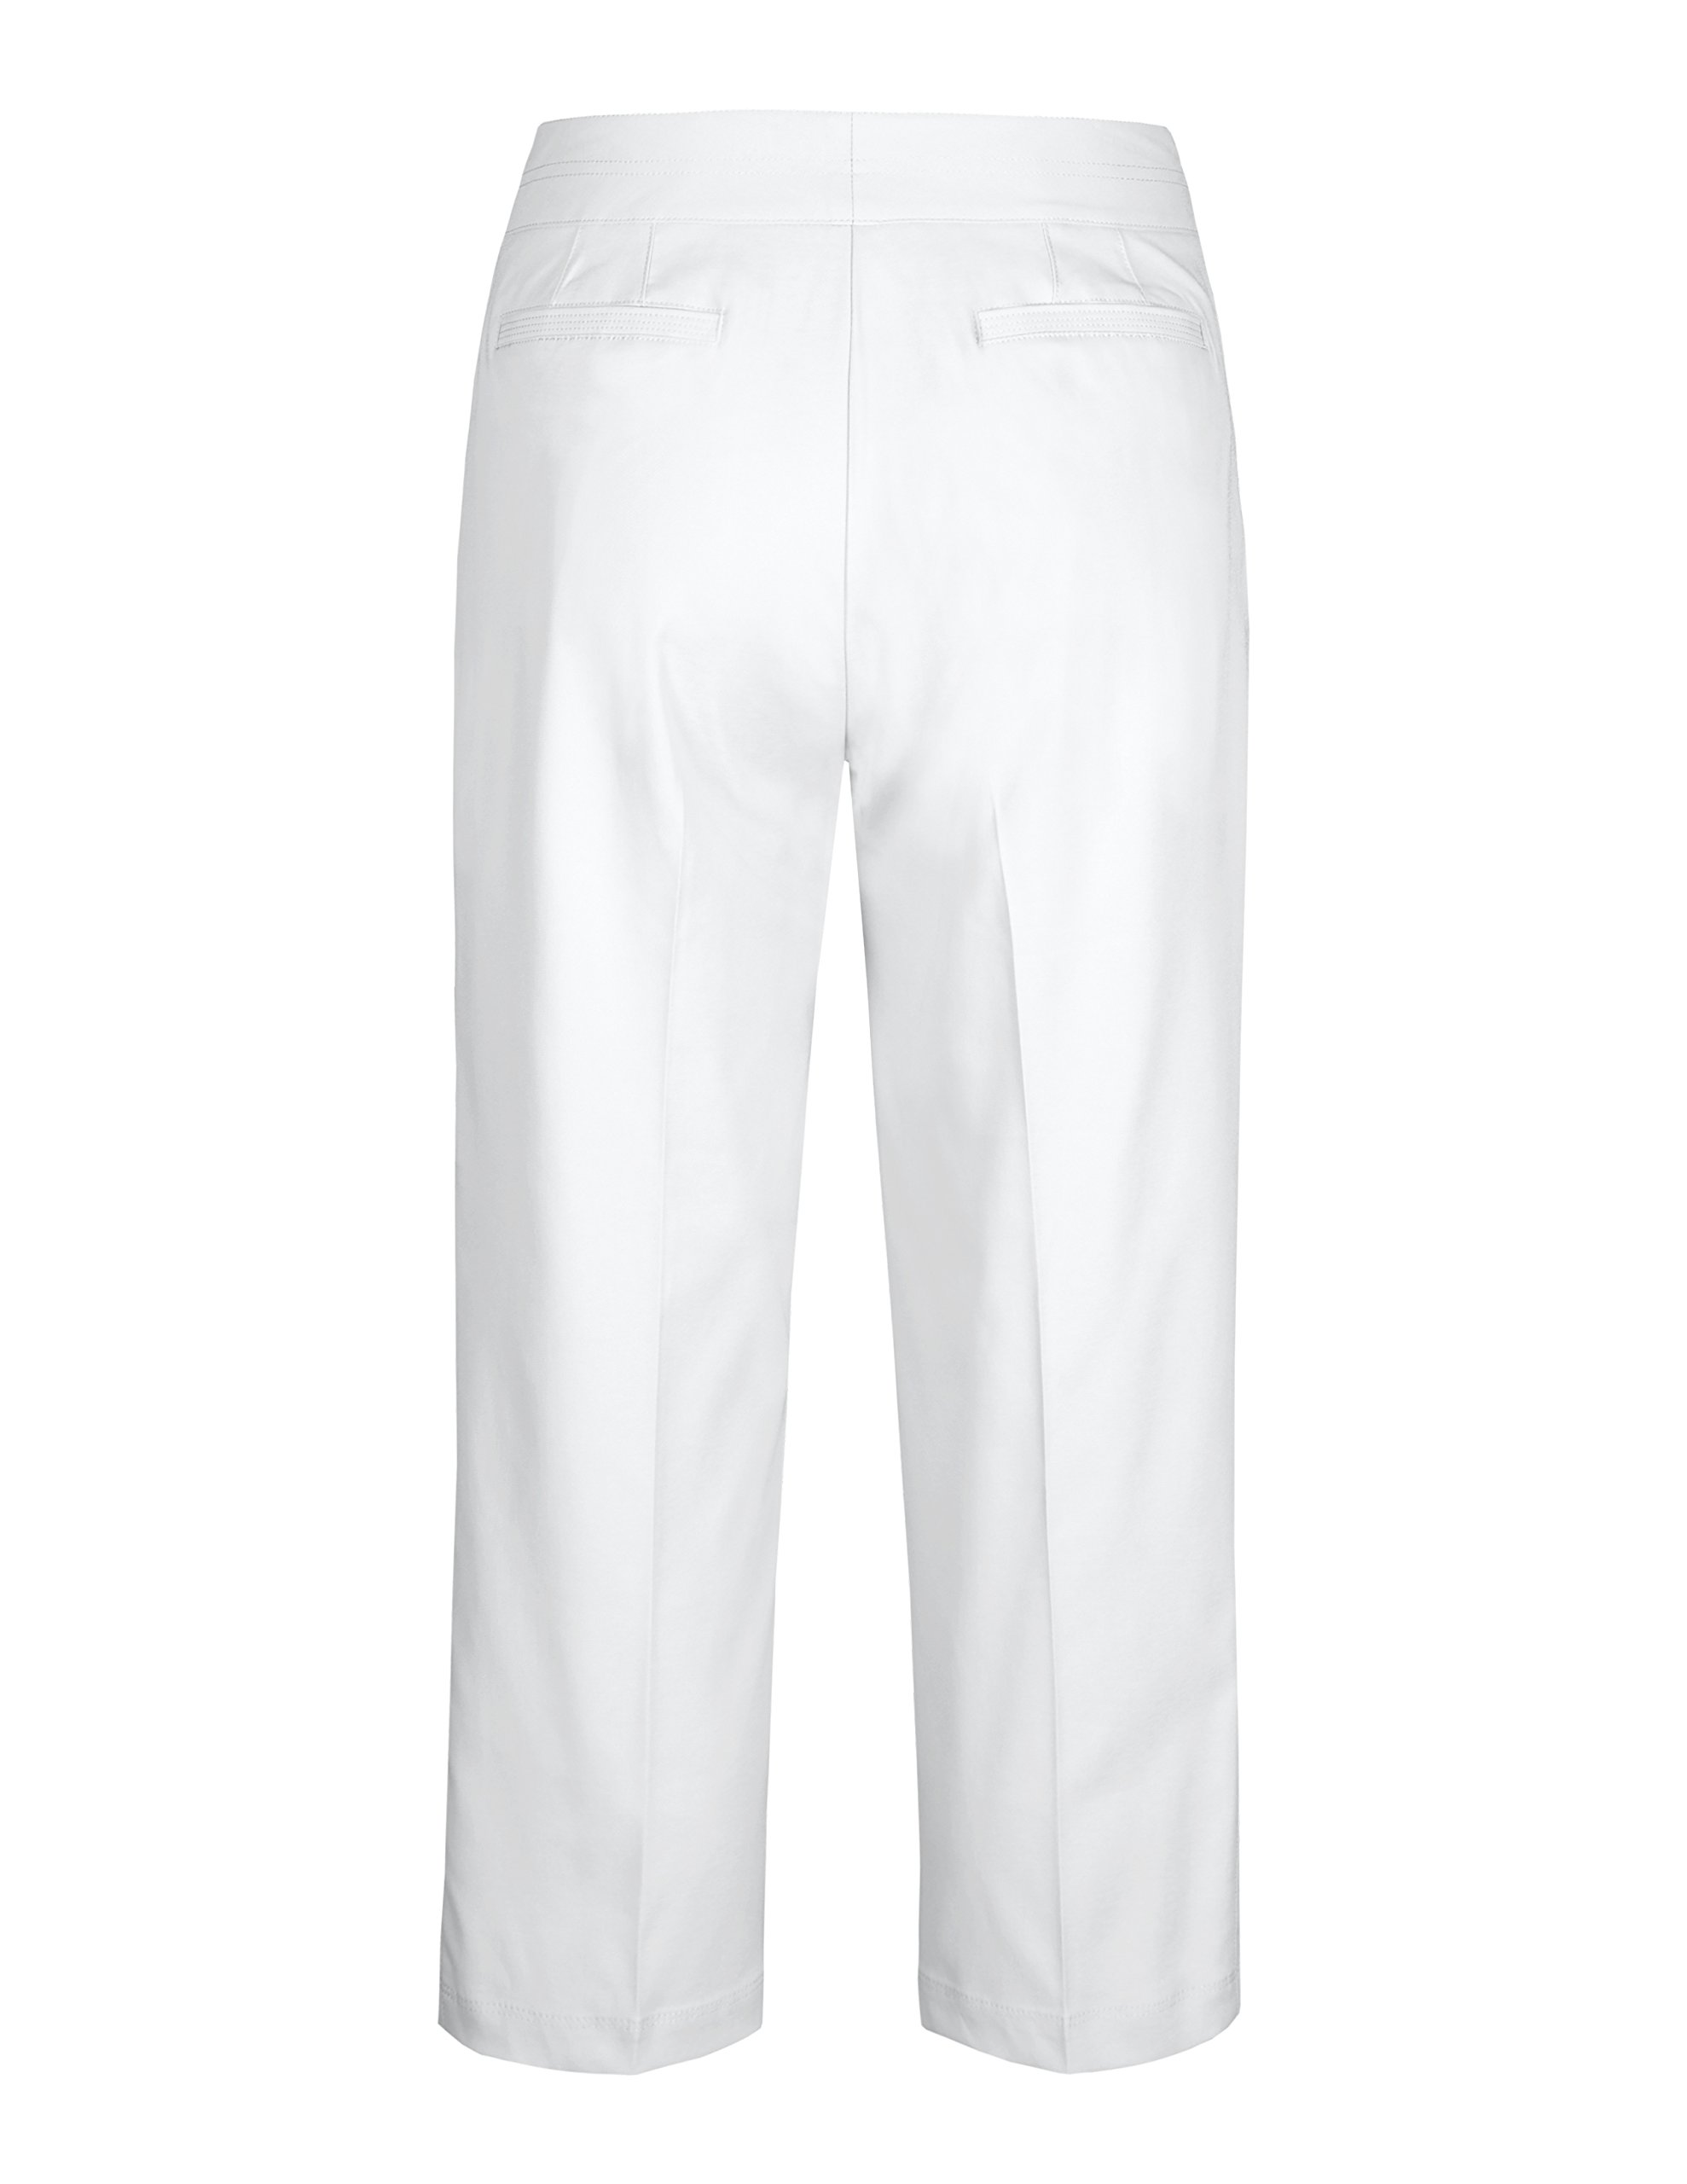 Tail Activewear Women's Classic Capri 4 White by Tail (Image #4)